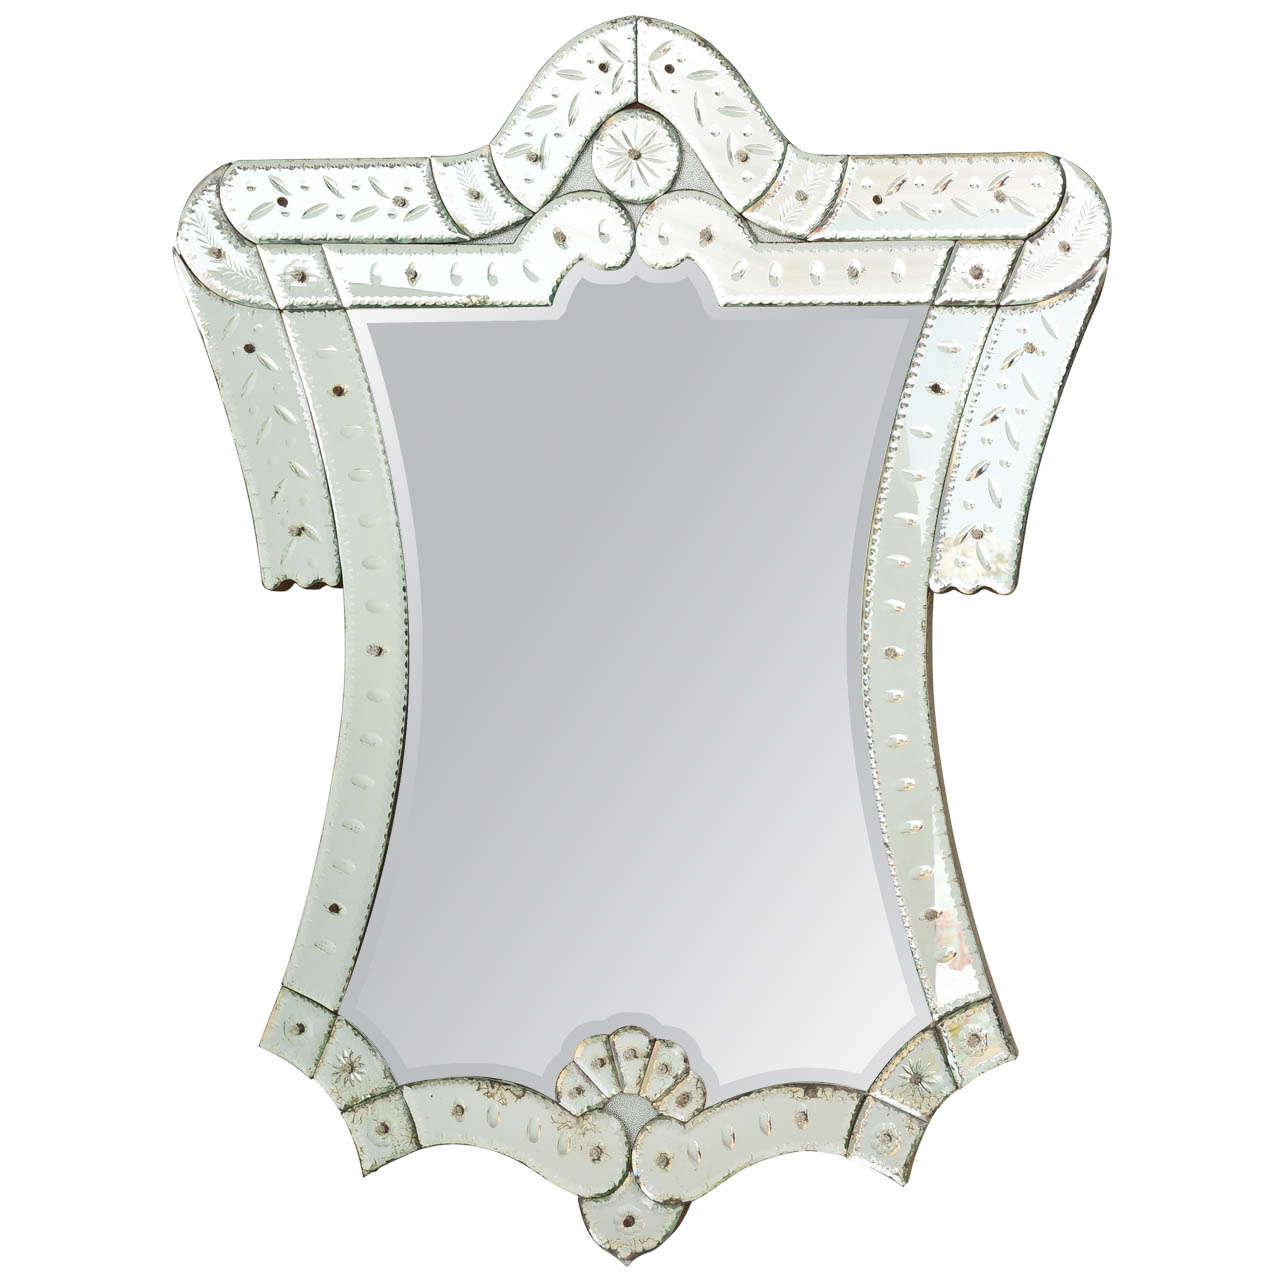 Unique Shaped Mirror Unusual Cartouche Shaped Venetian Mirror At 1stdibs